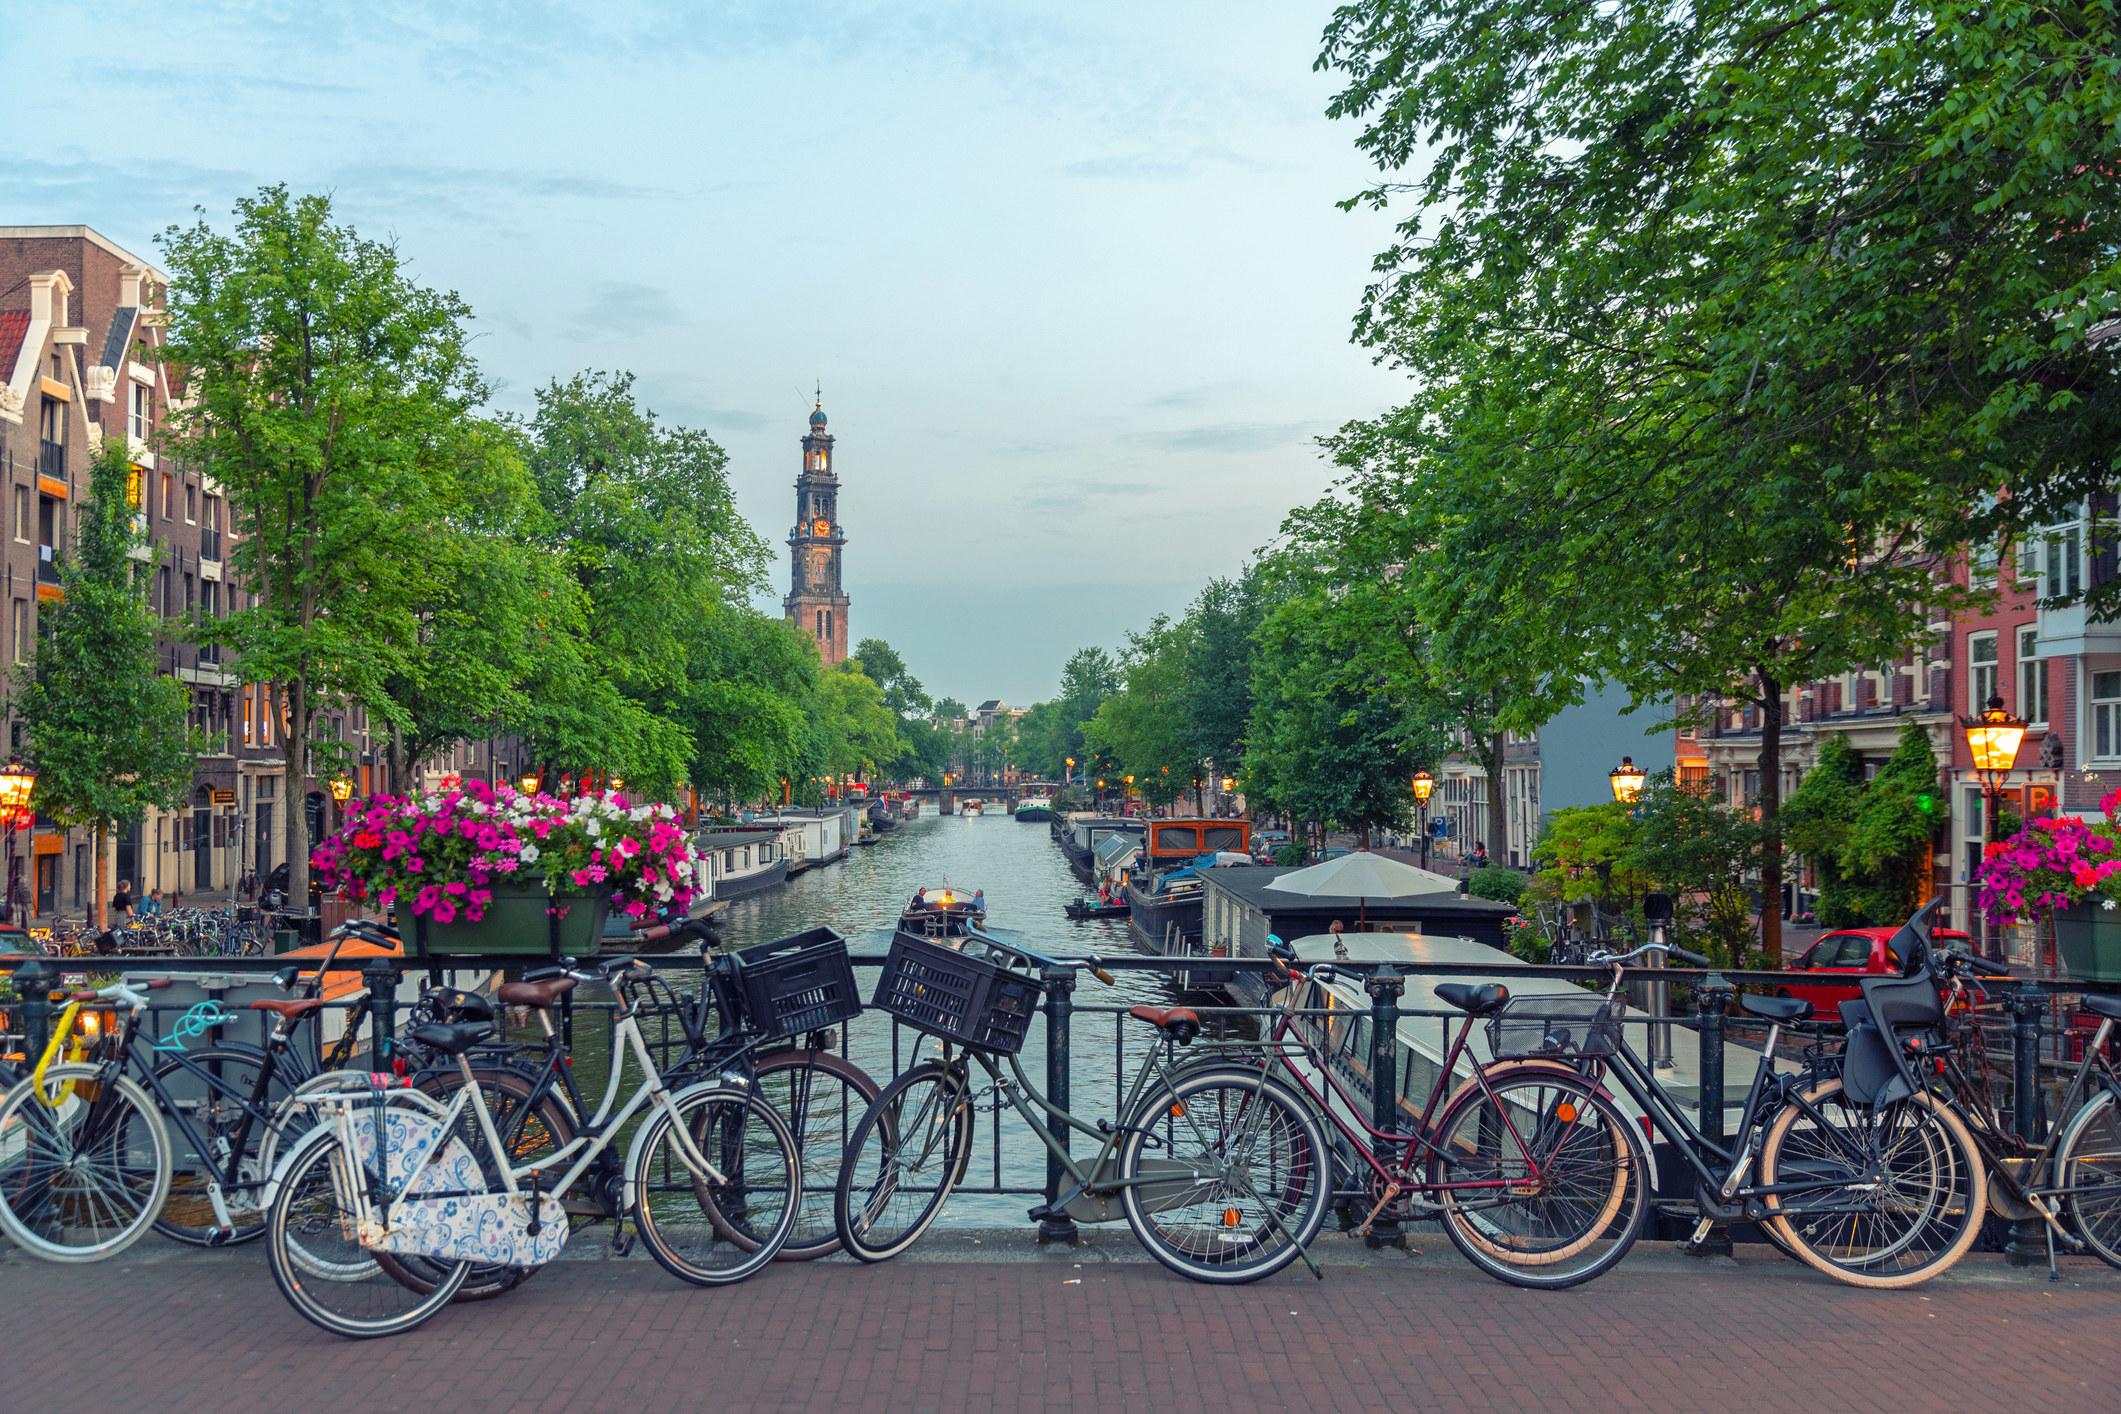 Bikes lined up along the canal in Amsterdam.